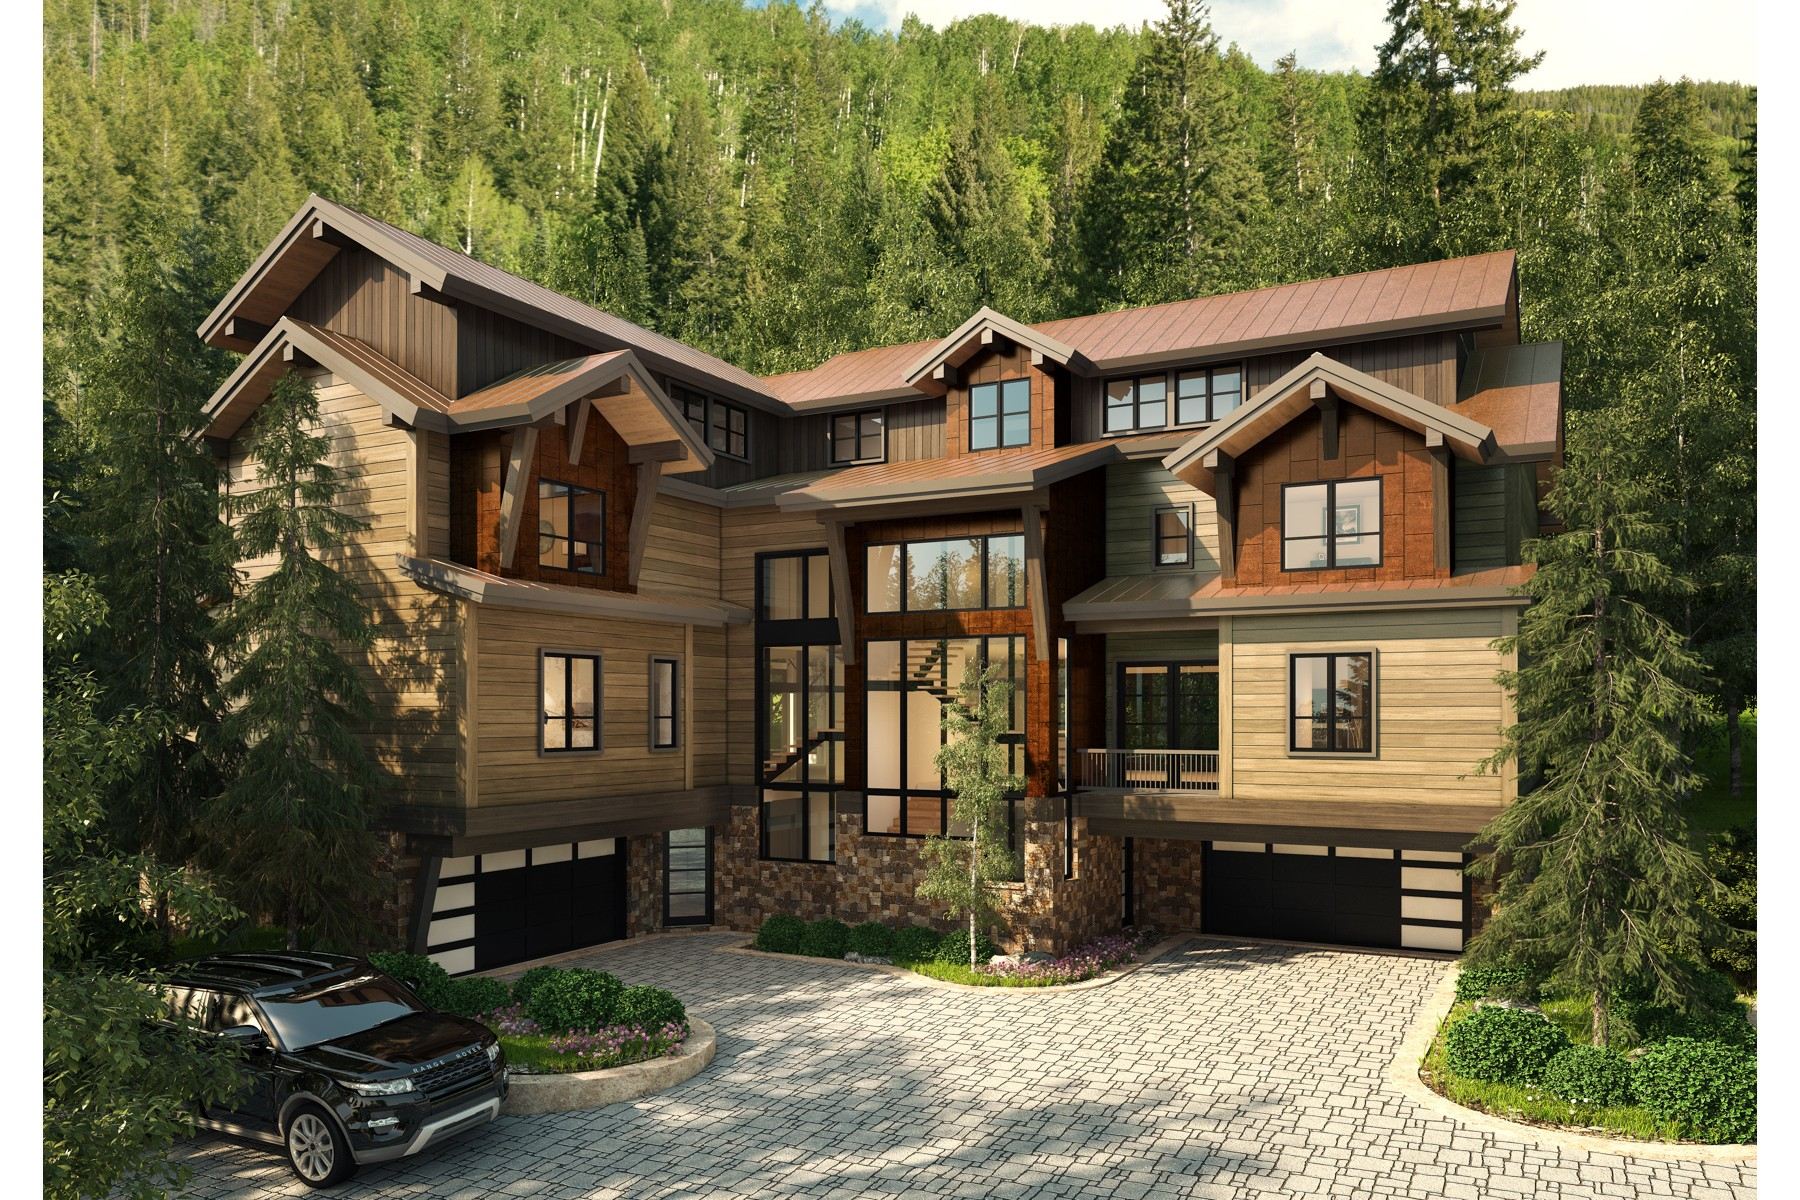 Property for Active at Peregrine Villas 187 Elk Track Road Beaver Creek, Colorado 81620 United States